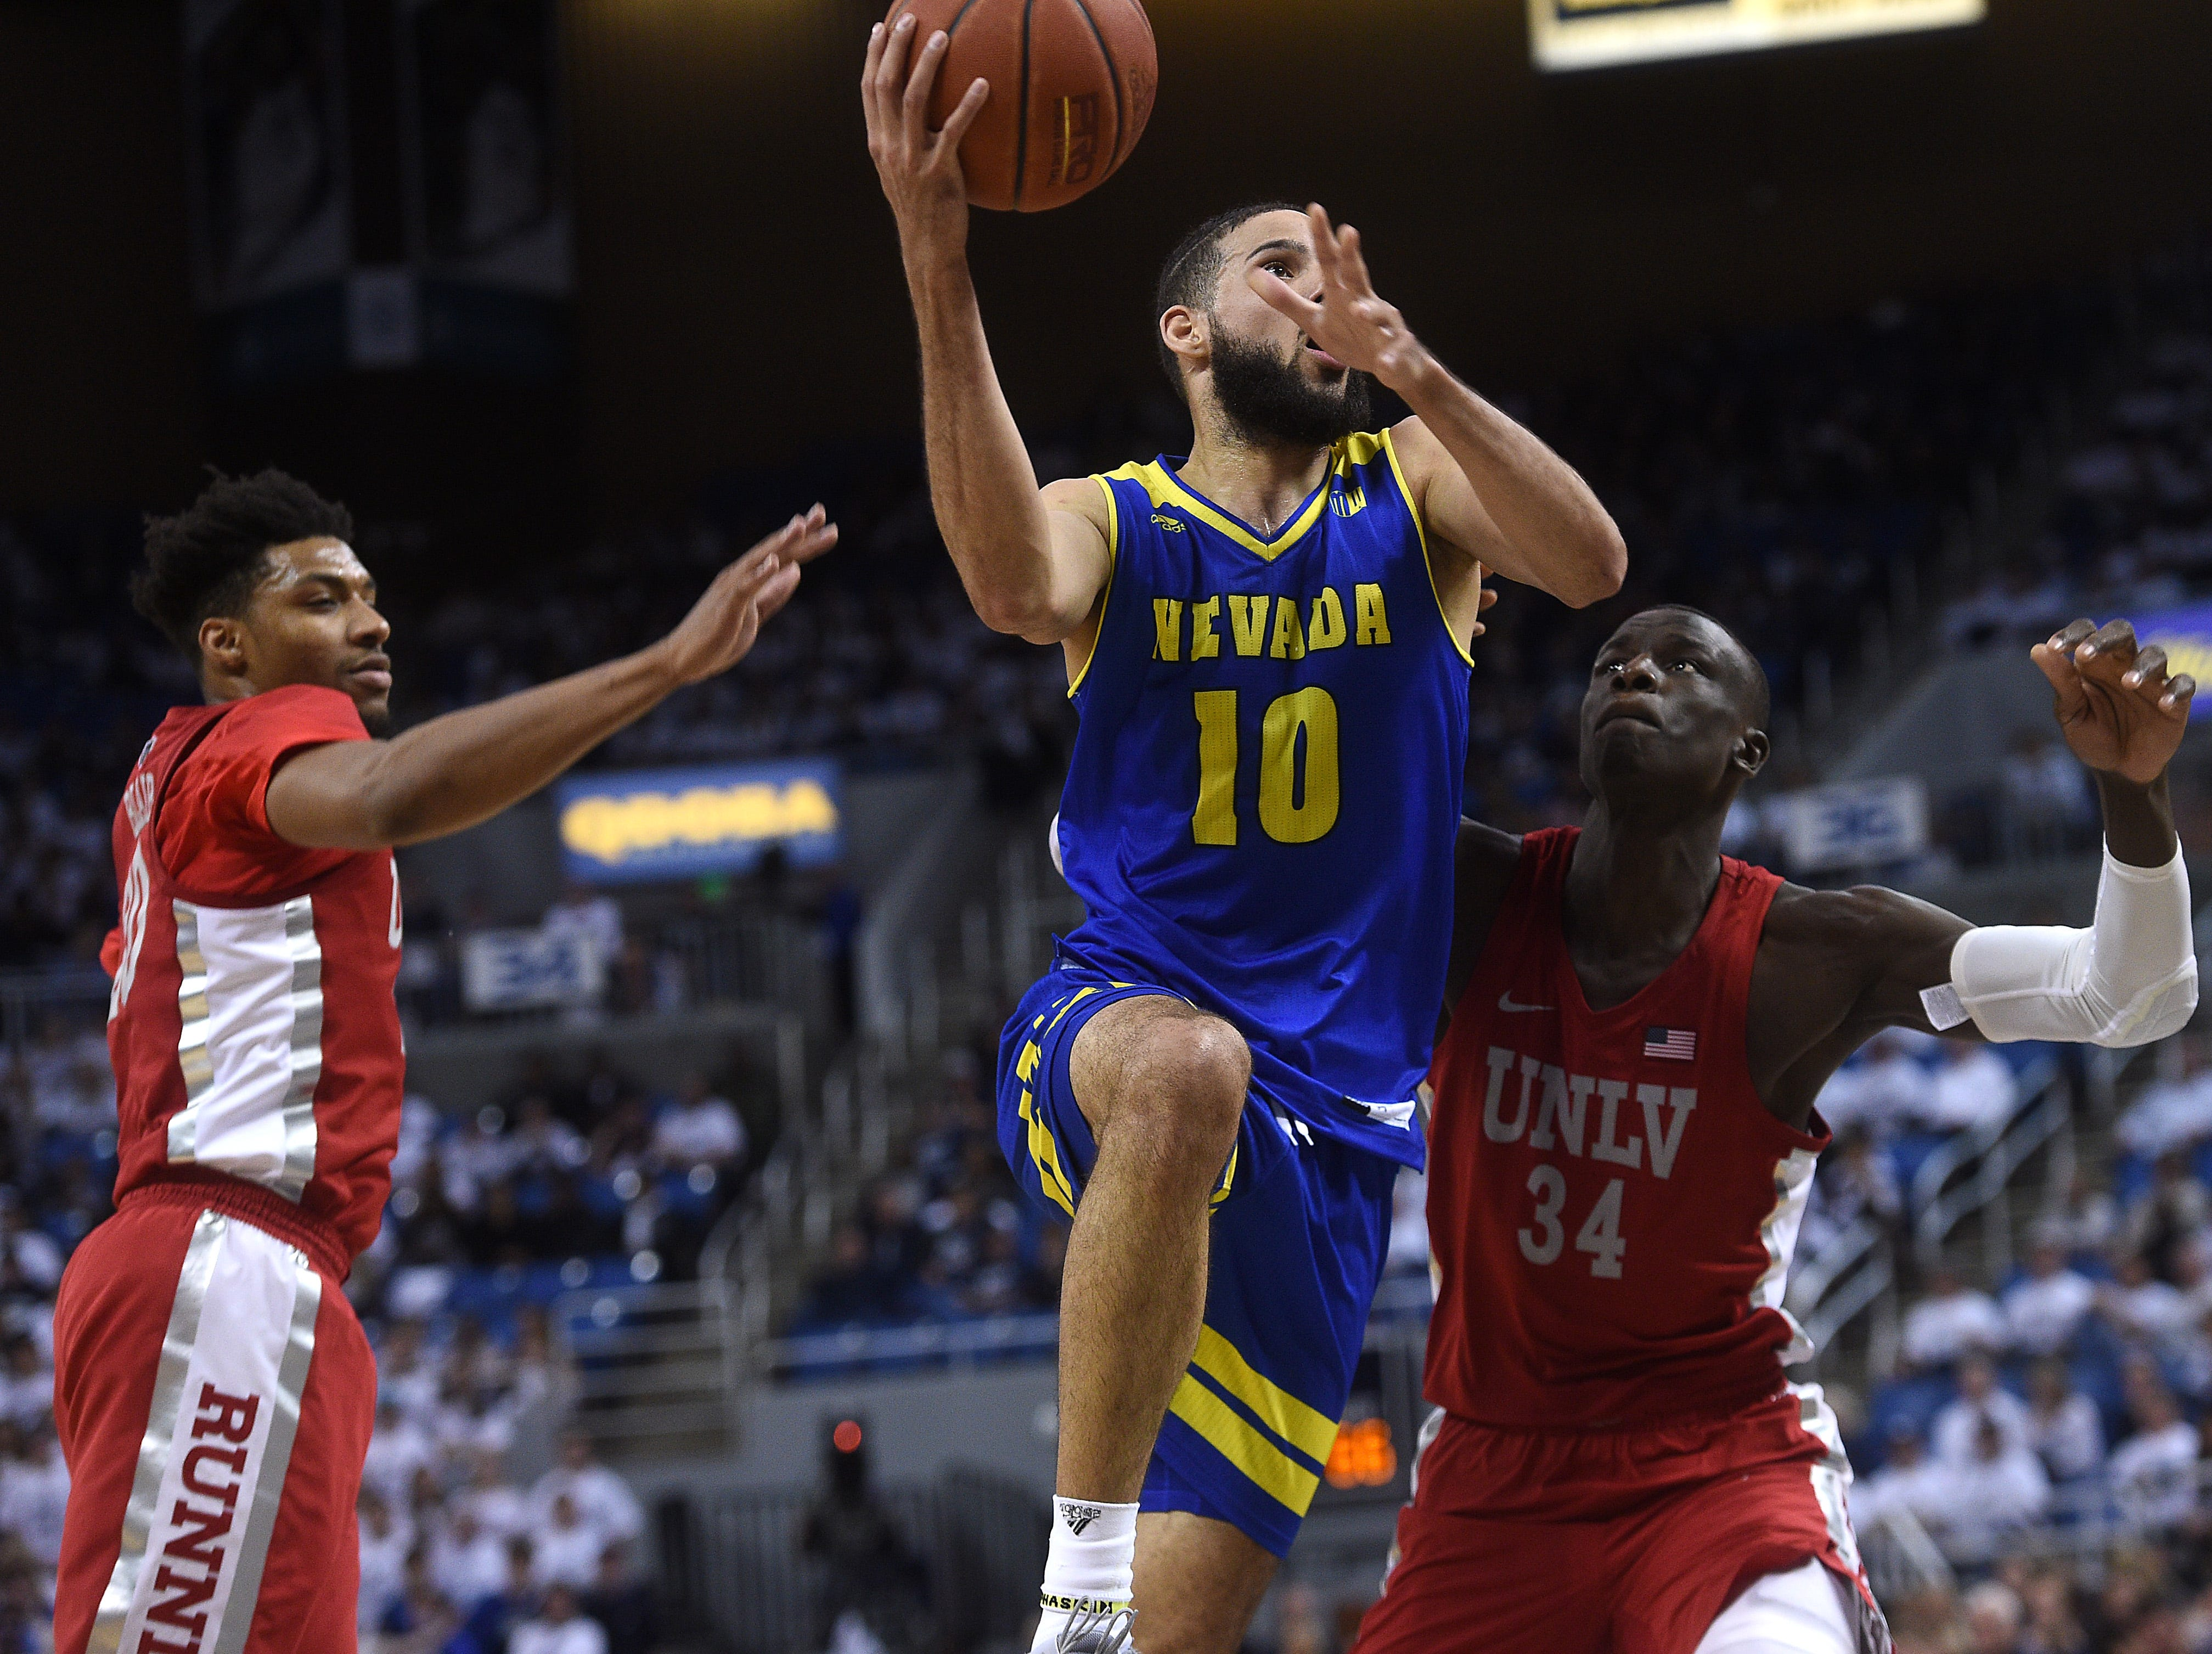 Nevada's Caleb Martin shoots while taking on UNLV during their basketball game at Lawlor Events Center in Reno on Feb. 27, 2019.